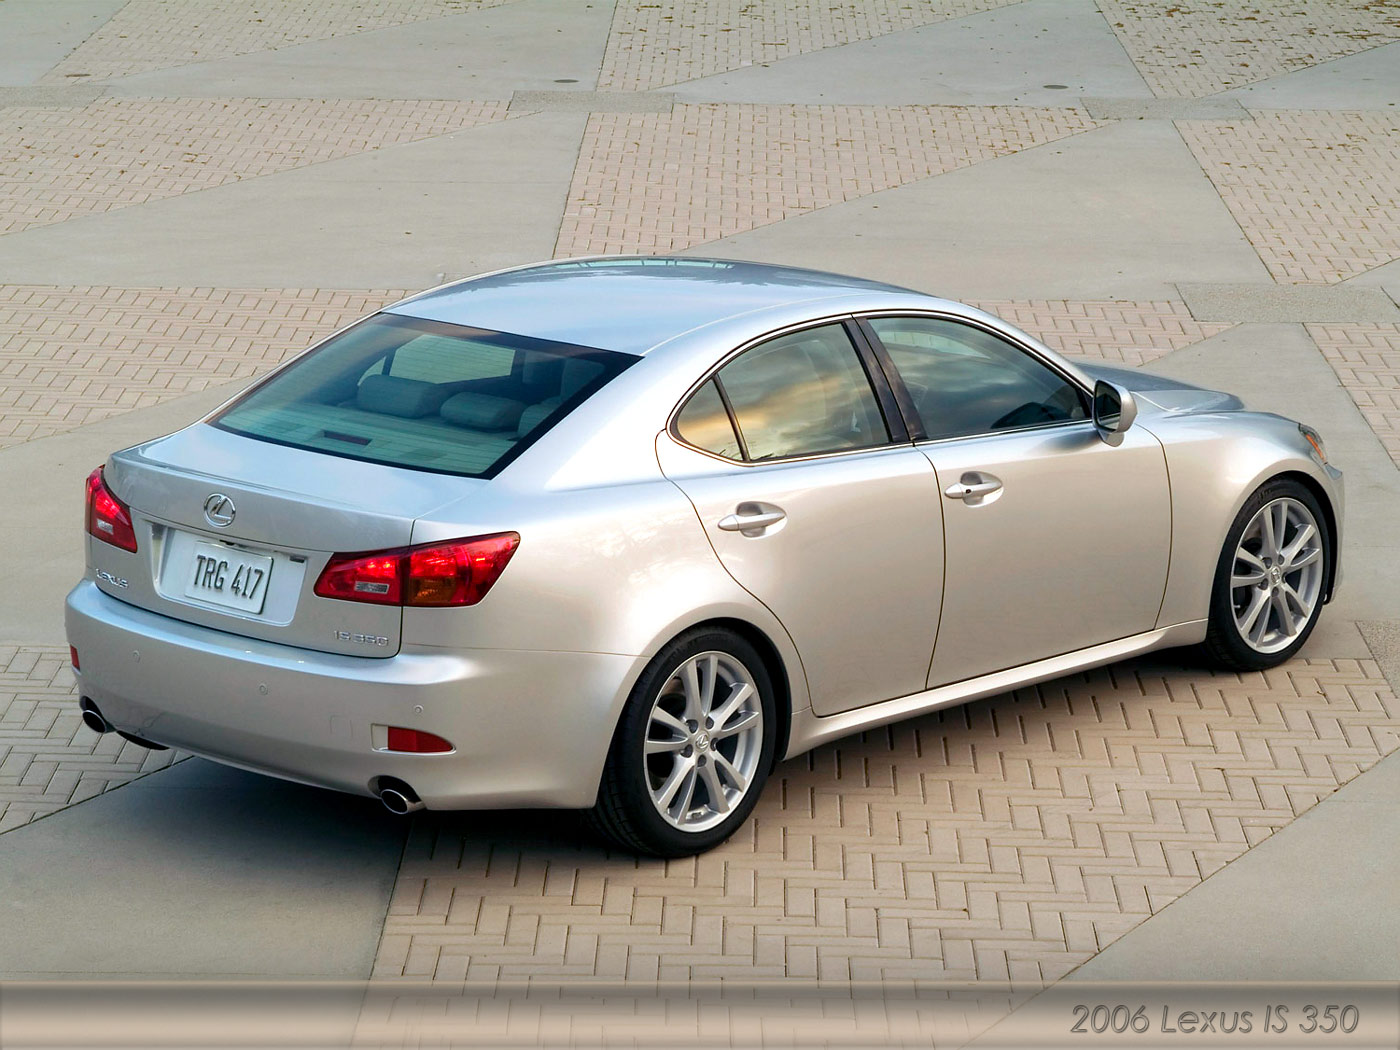 2006 Lexus Is 350 #11